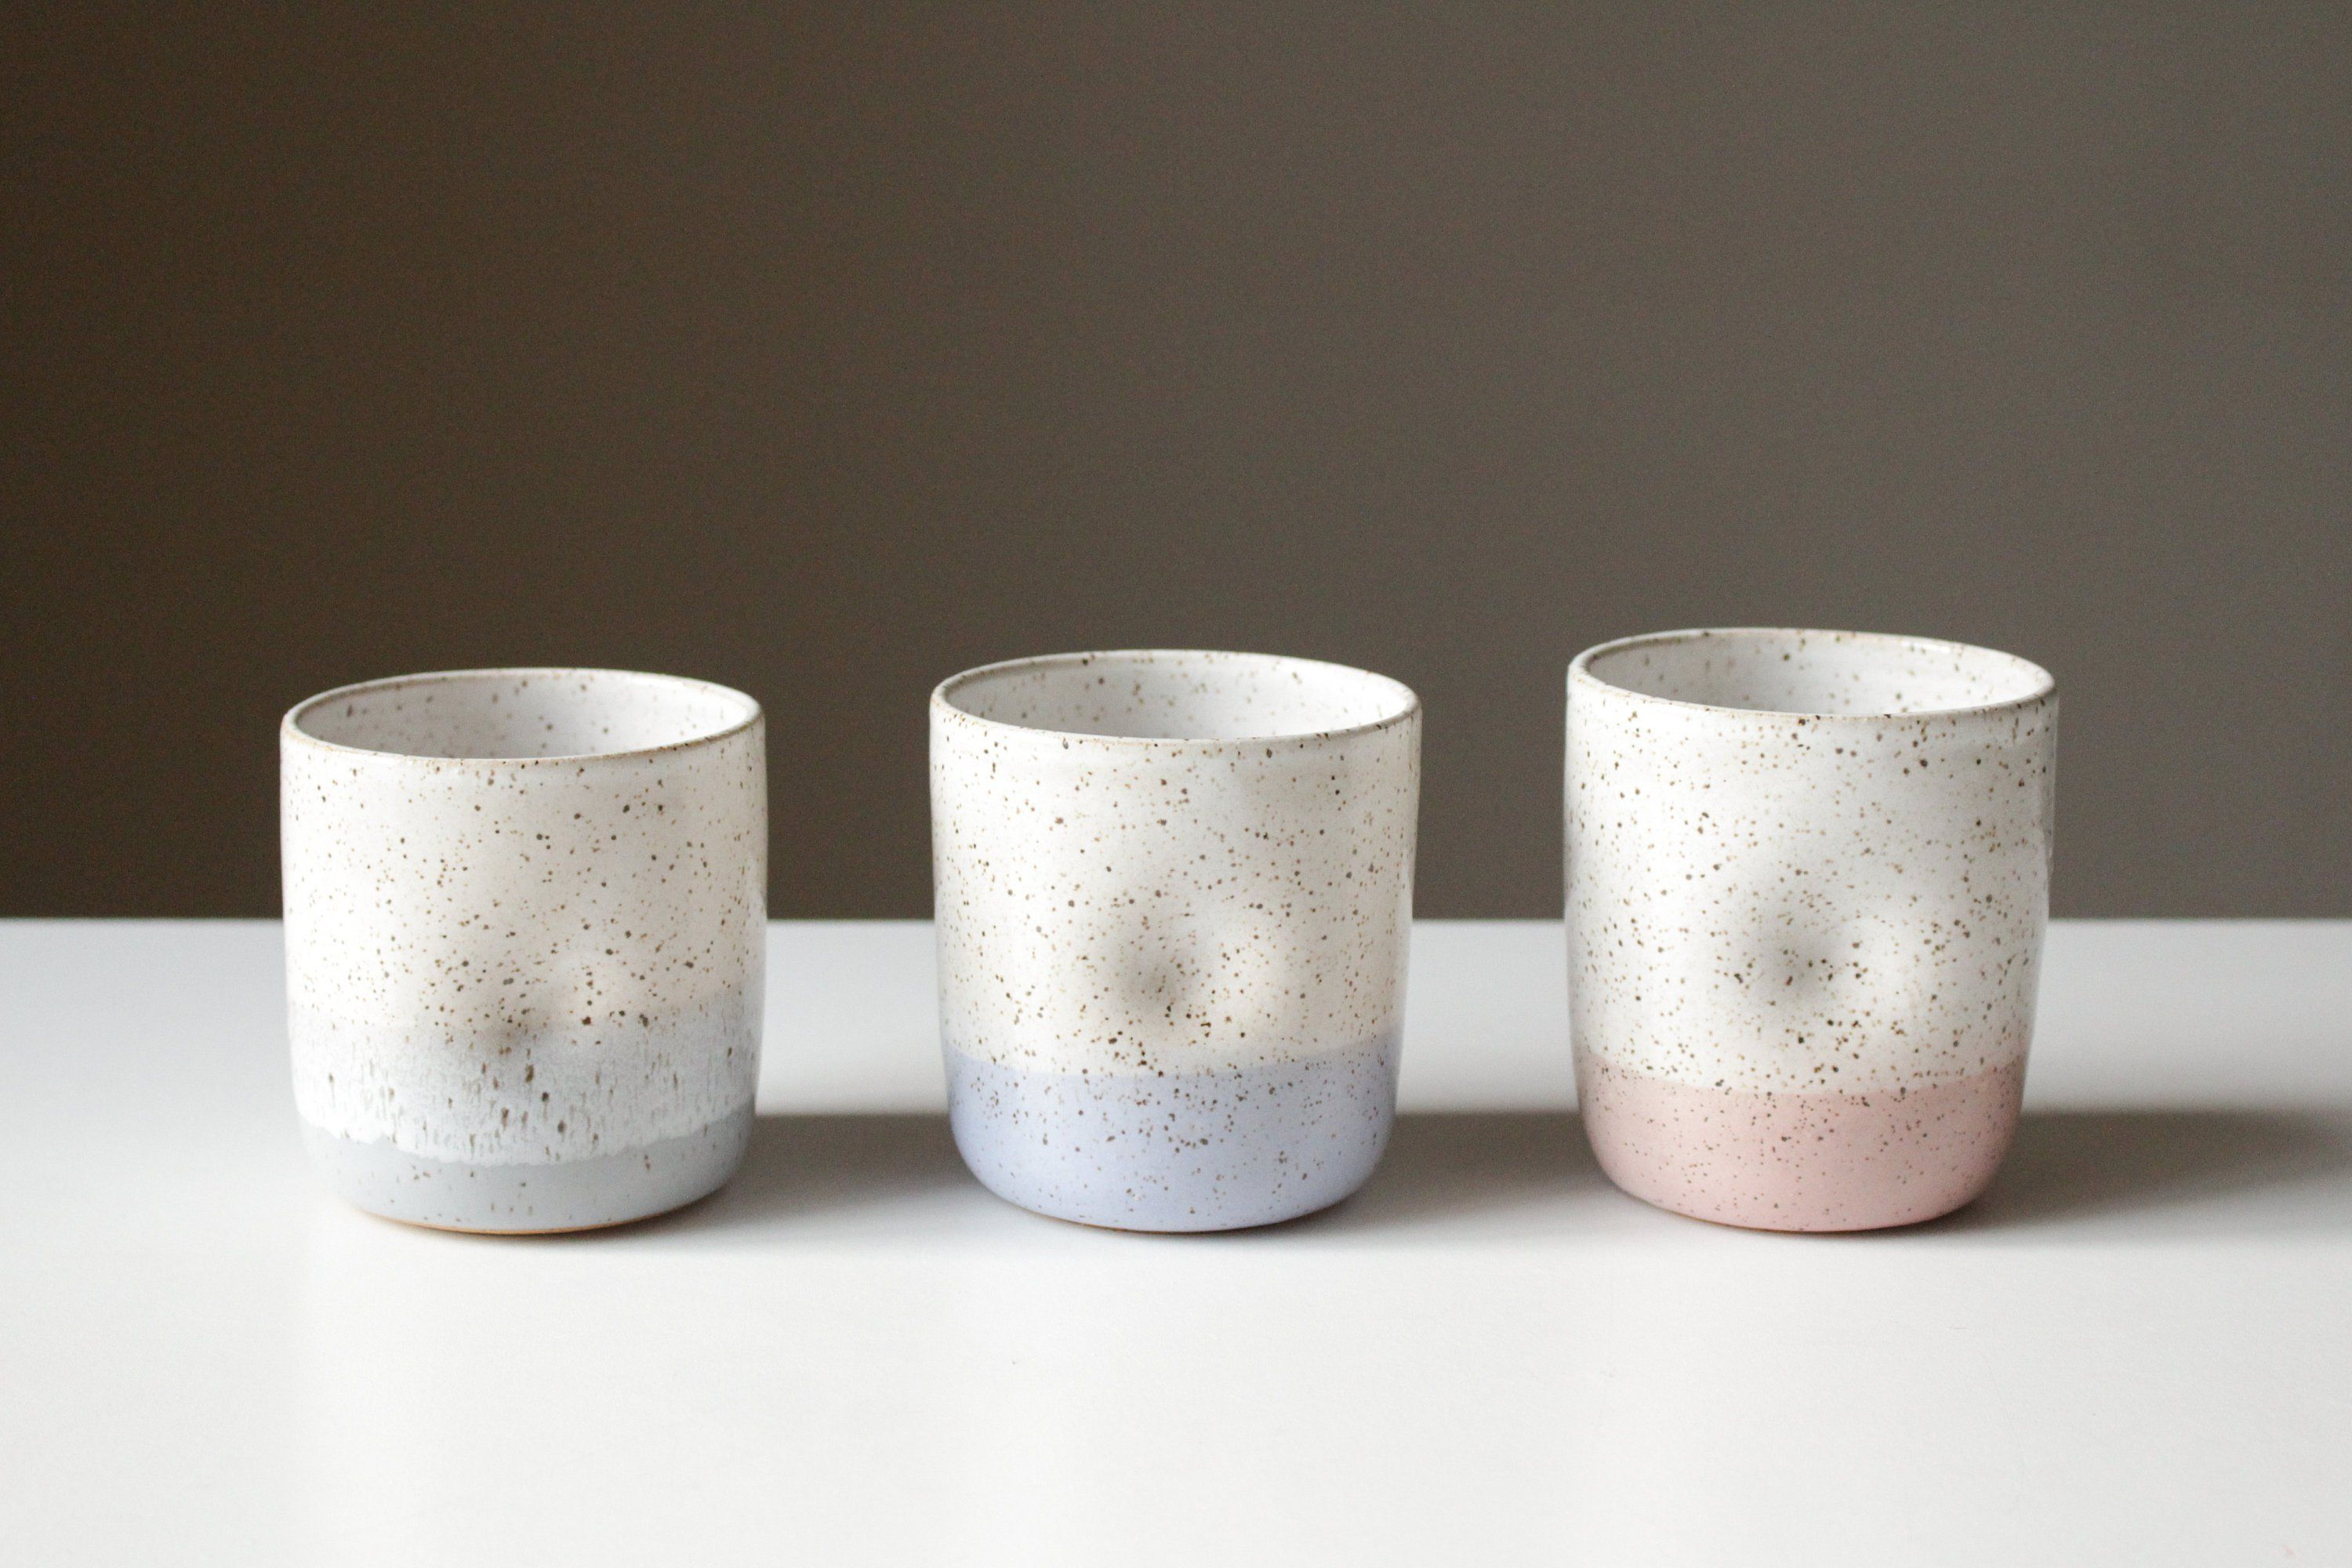 Cord X Clay Speckled Ceramic Cup With Thumb Hold Clay Pottery Dimpled Tumbler Water Glass Mug White Pink Blue Ceramic Tumbler Ceramic Cups Clay Pottery